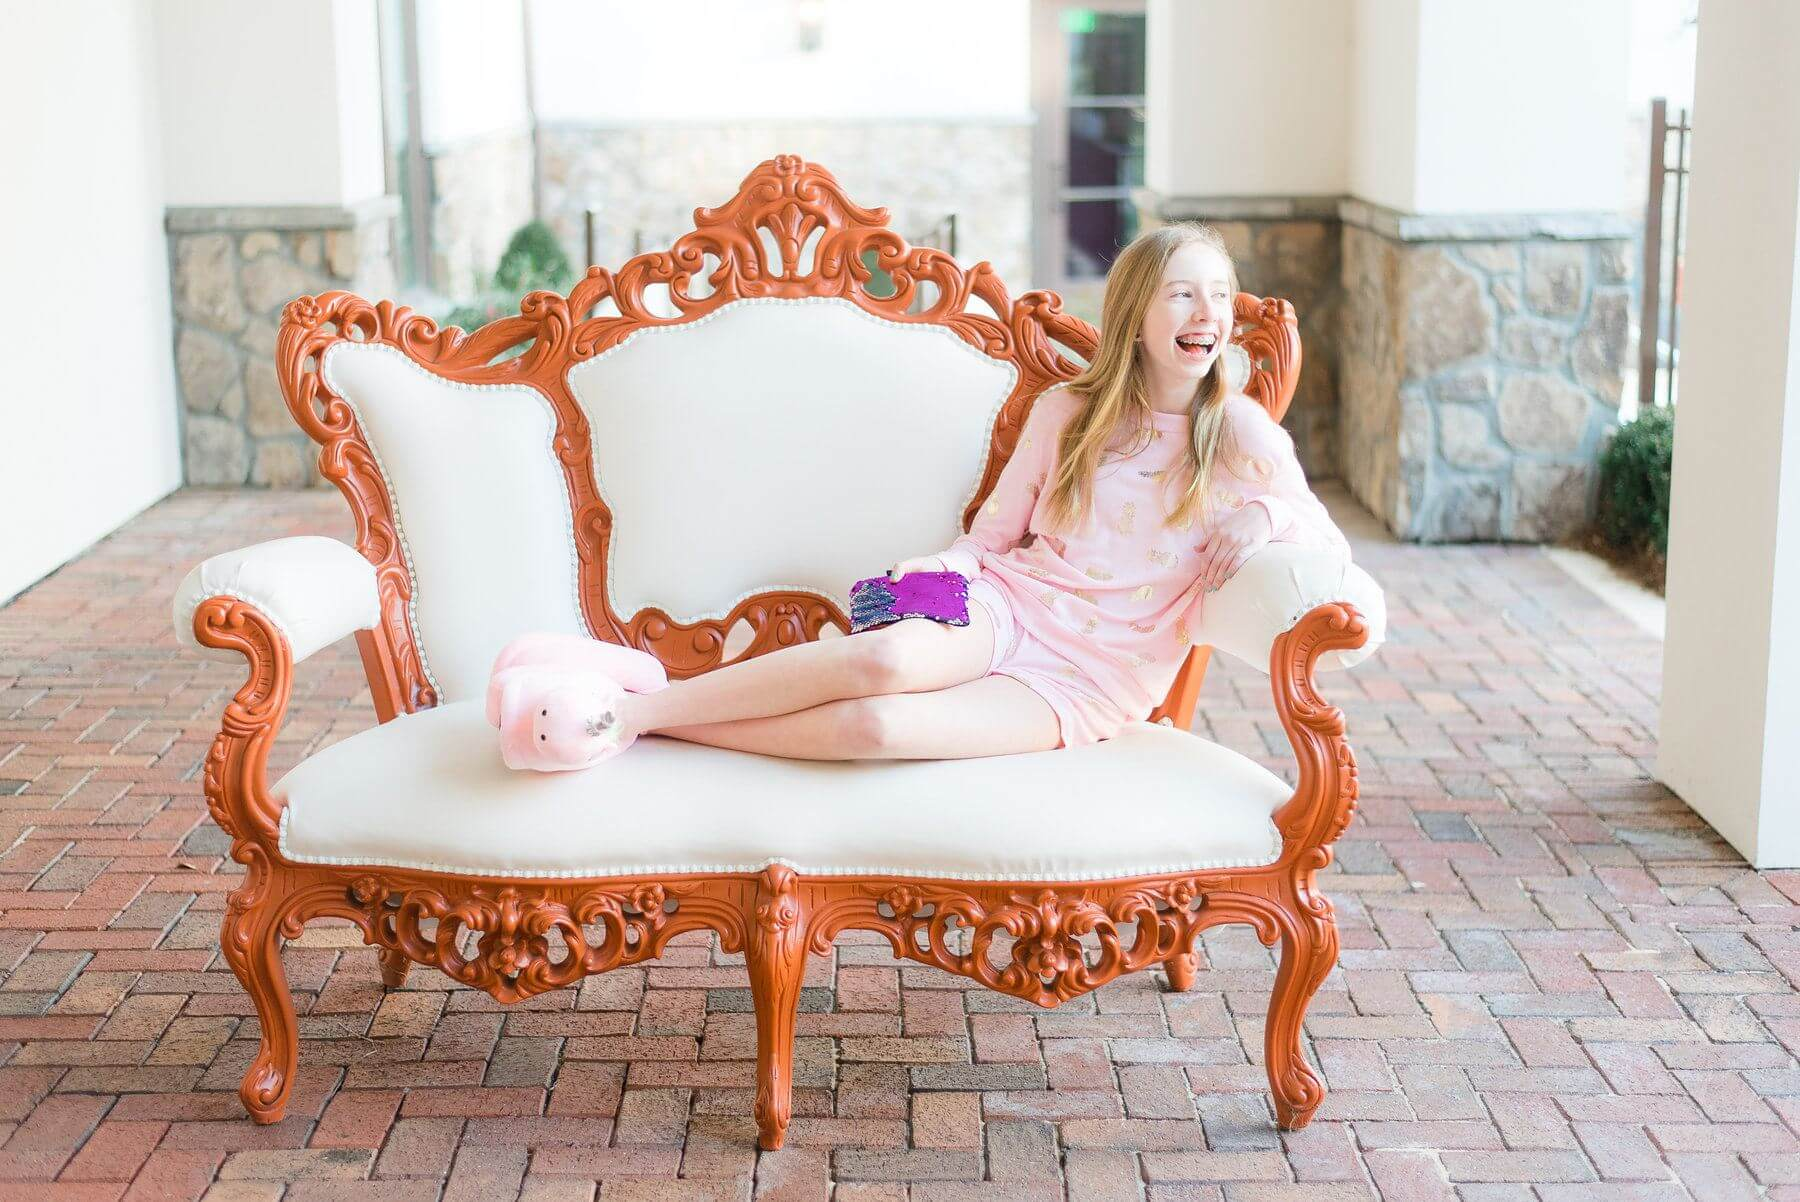 This precious pineapple pajama set is the ultimate cozy loungewear attire. Or pair the pullover with some GiGi's Teen denim and you've got a super cute and comfy everyday look. Find the pullover for $56 and shorts for $42 at GiGi's Teen.